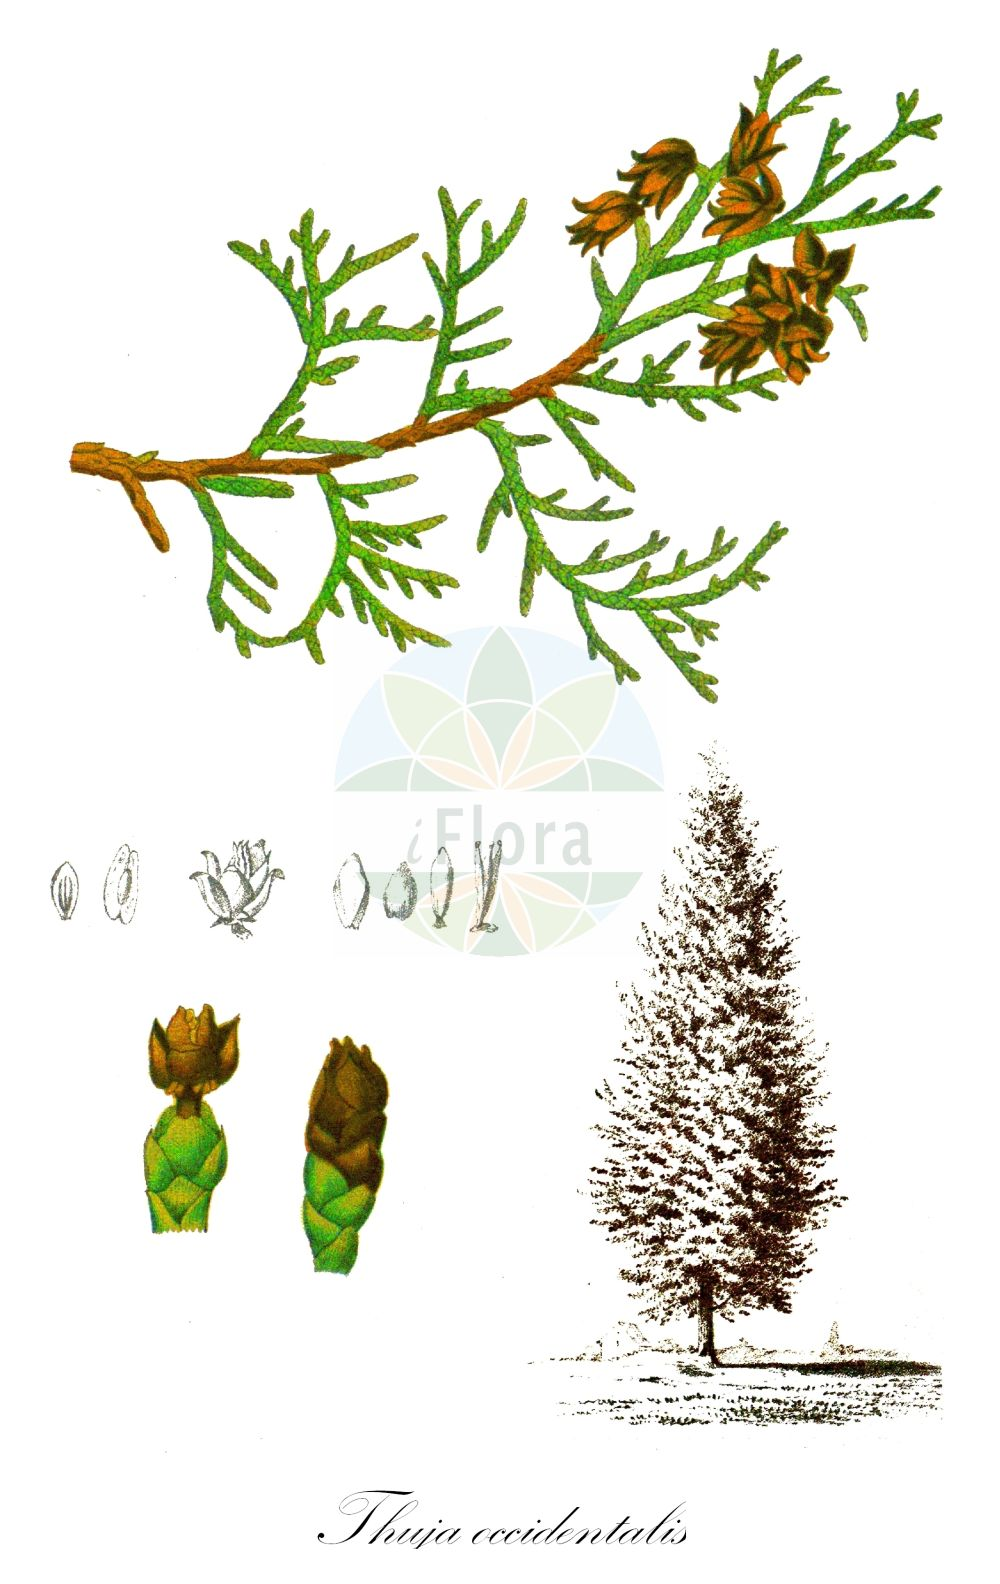 Historische Abbildung von Thuja occidentalis (Abendlaendischer Lebensbaum - Northern White-cedar). Das Bild zeigt Blatt, Bluete, Frucht und Same. ---- Historical Drawing of Thuja occidentalis (Abendlaendischer Lebensbaum - Northern White-cedar).The image is showing leaf, flower, fruit and seed.(Thuja occidentalis,Abendlaendischer Lebensbaum,Northern White-cedar,American Arbor-vitae,Arborvitae,Thuja,Lebensbaum,Cedar,Cupressaceae,Zypressengewaechse,Cypress family,Blatt,Bluete,Frucht,Same,leaf,flower,fruit,seed,Millspaugh (1892))